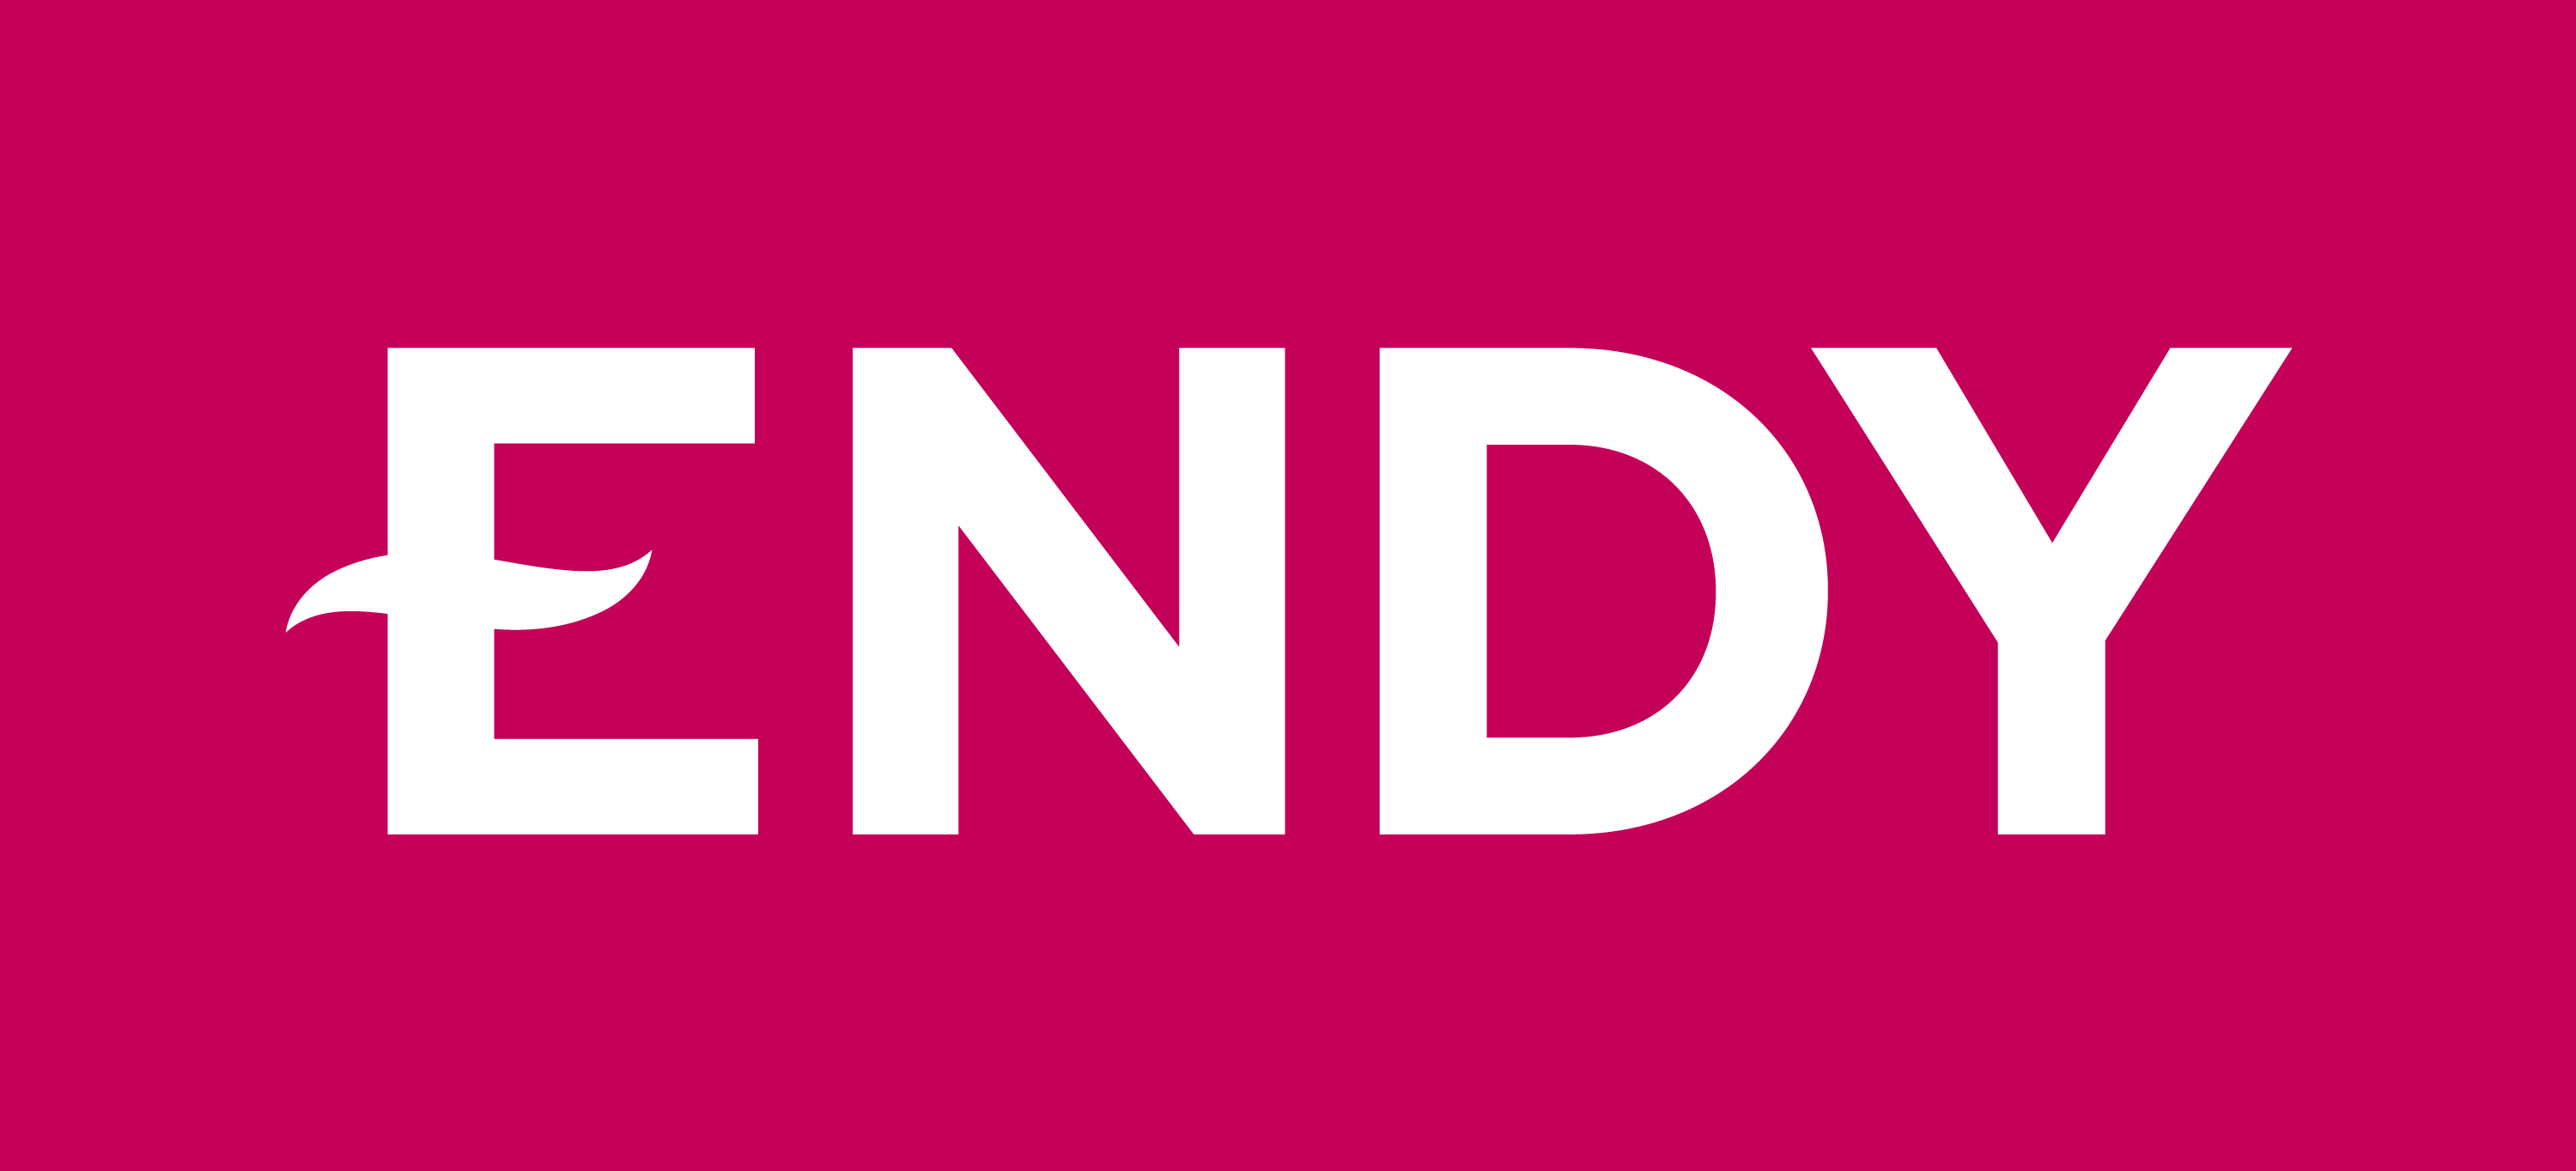 Canadian Mattress Company Endy To Be Acquired By Sleep Country